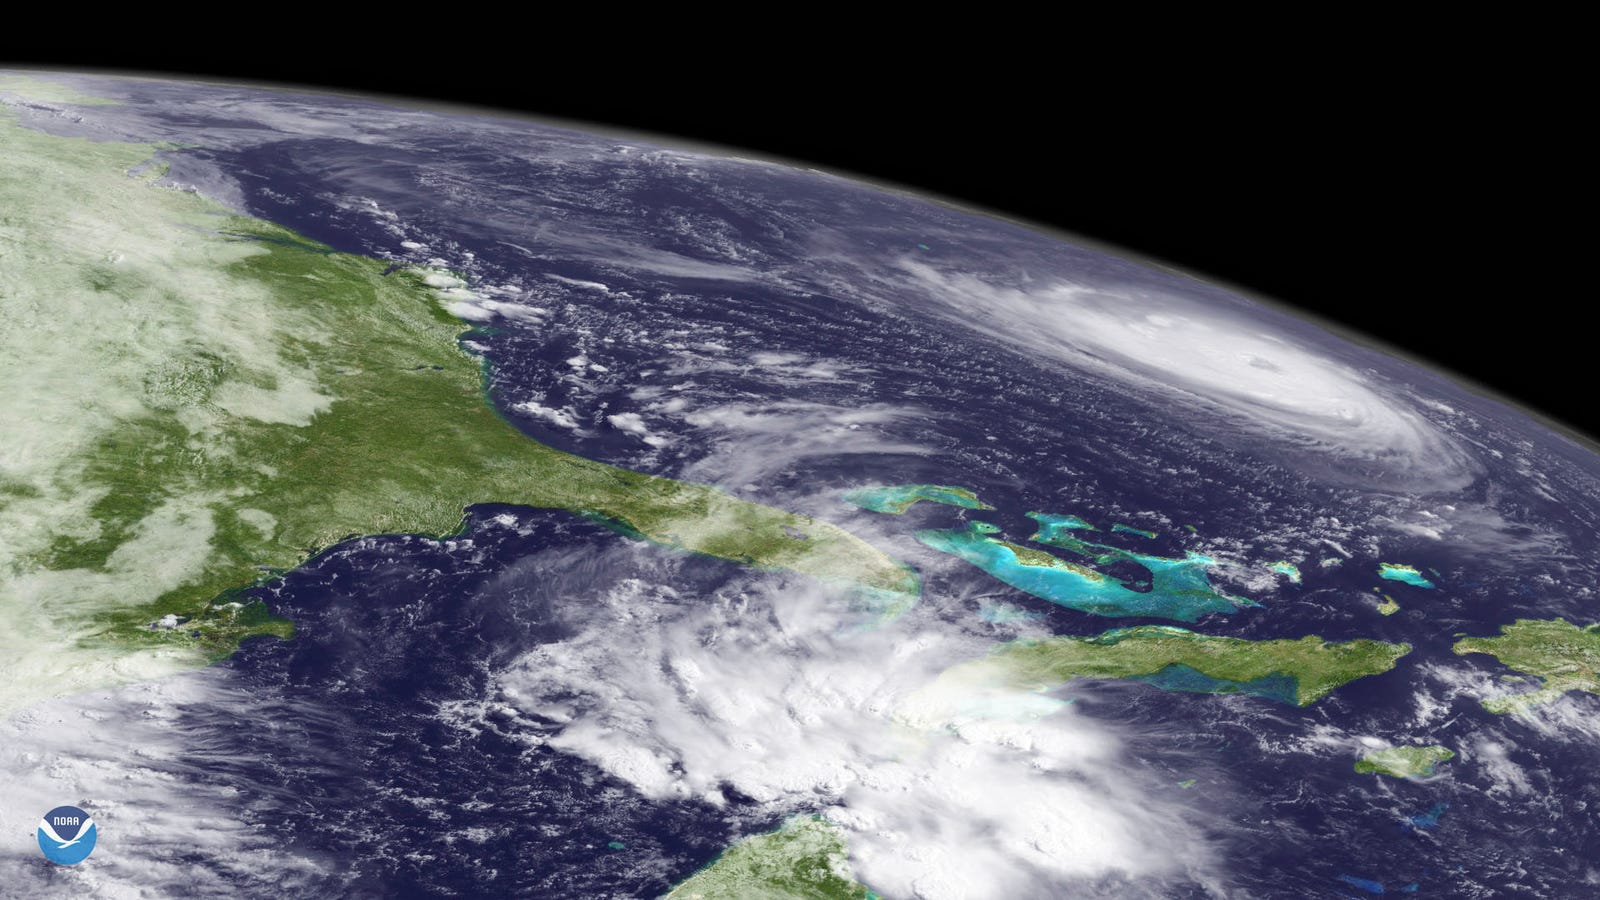 Learn More About Earth's Ecology and Weather With NOAA's New App